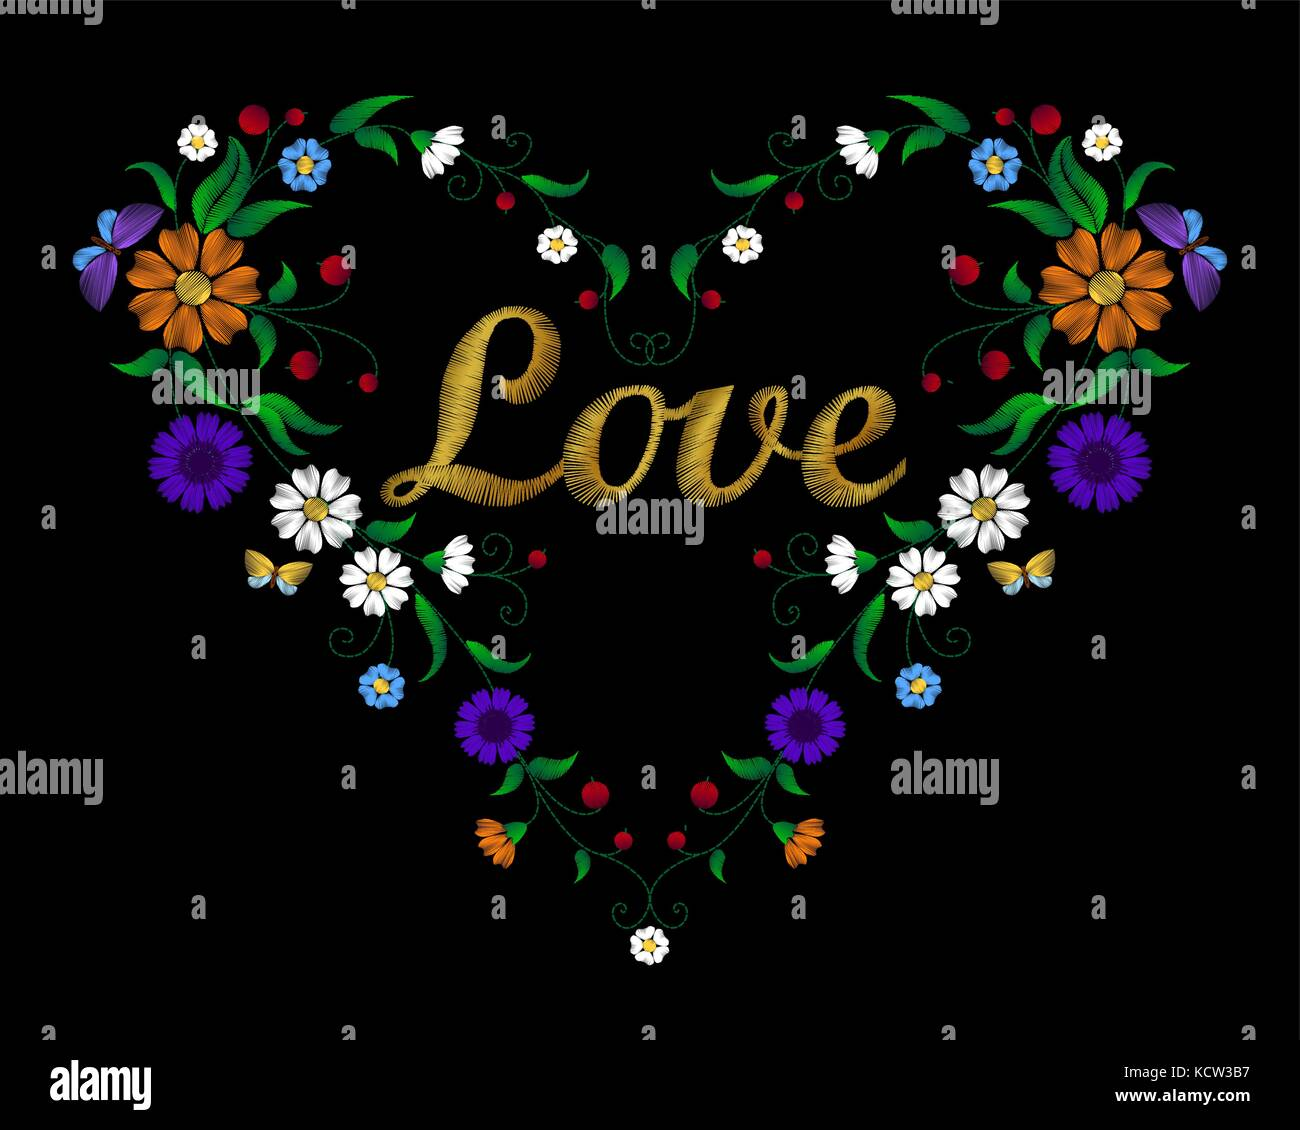 Embroidery Flower Heart With Lettering Word Love Golden Stiches Field Chamomille Berry Butterfly Traditional Ornament Decoration Rustic Cornflowers D